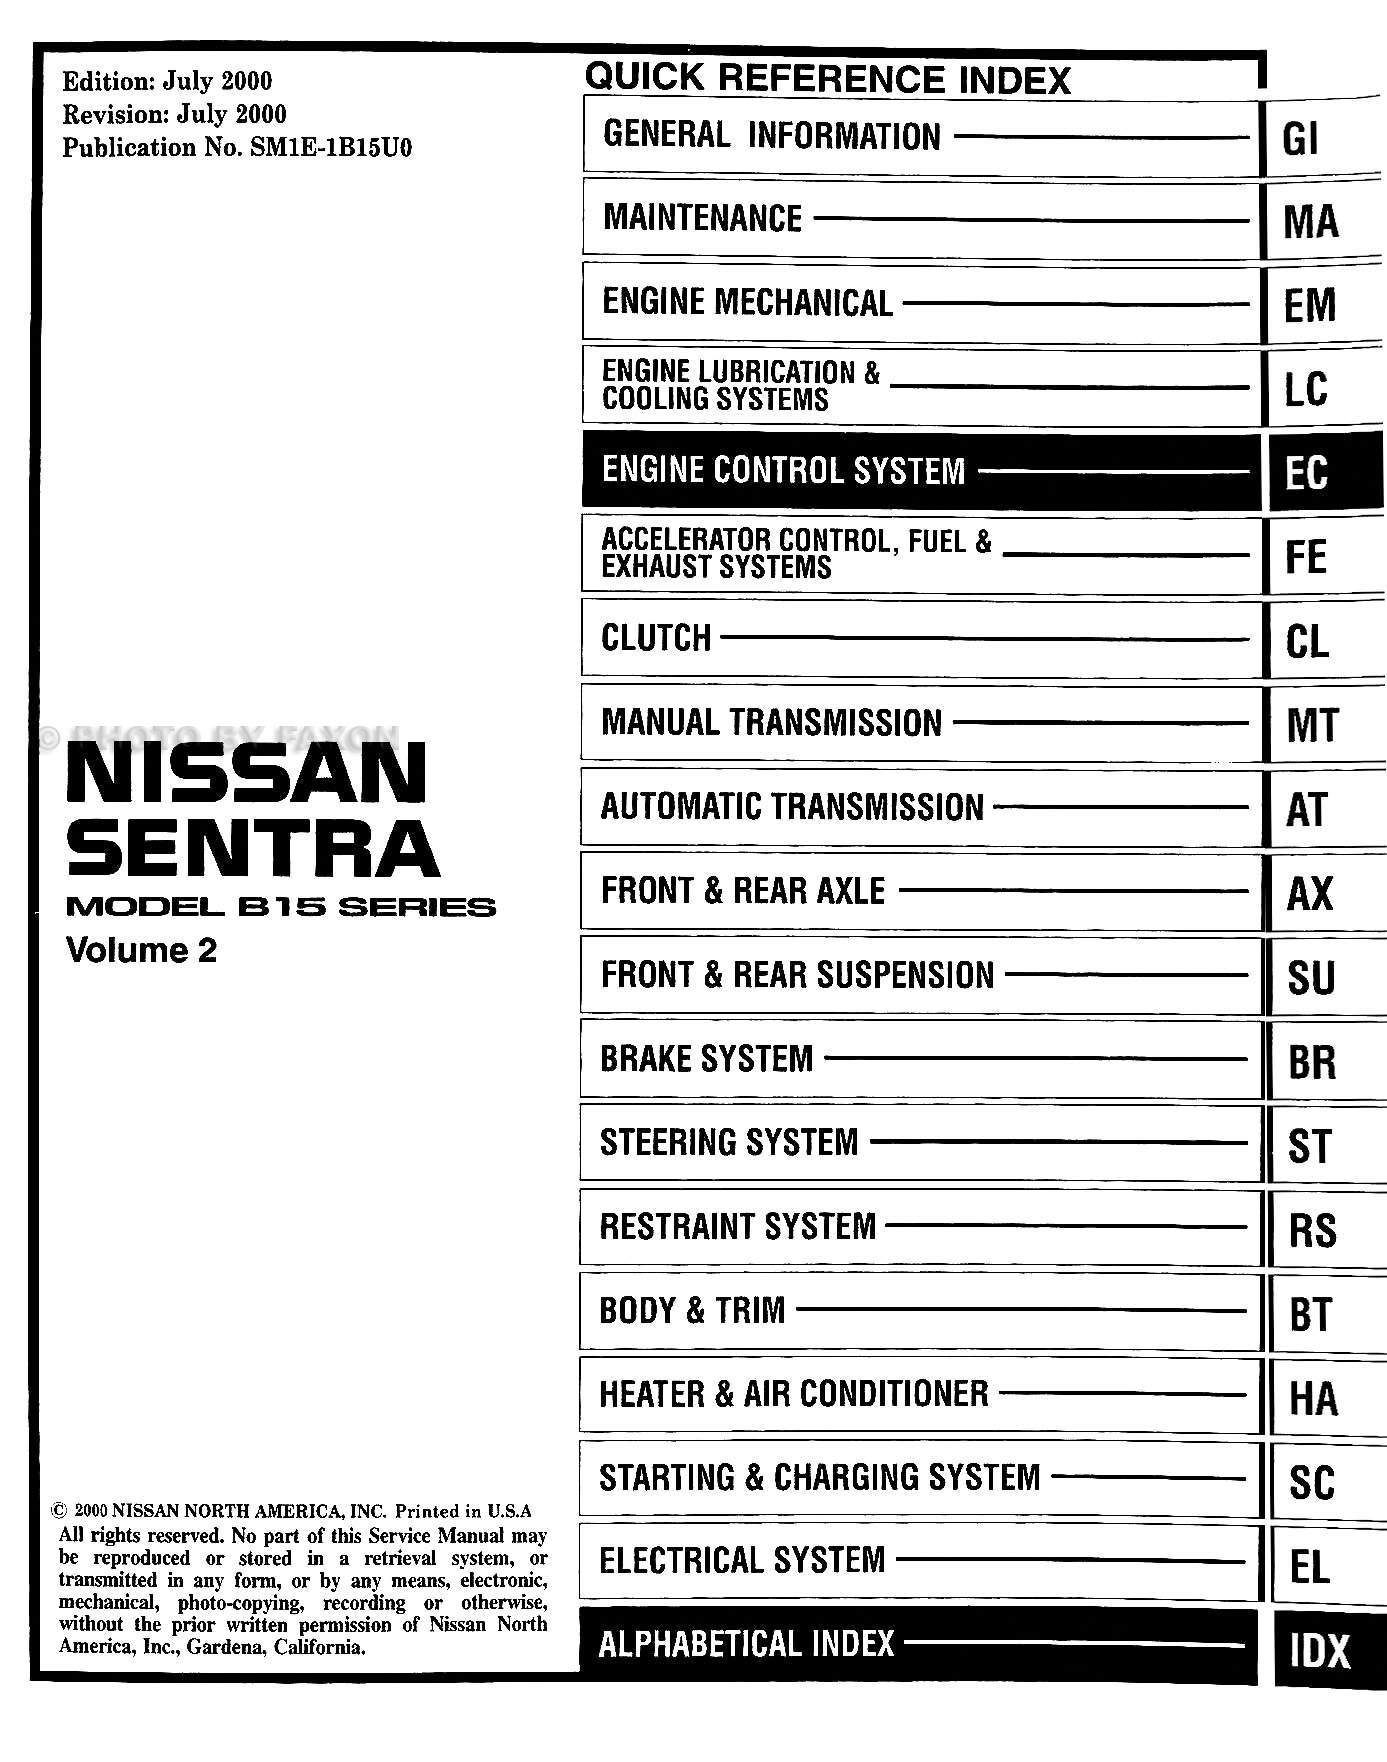 Nissan Sentra Fuse Diagram Wiring Diagrams Jeep Cj5 Harnesses Jcwhitney 2001 Cd Rom Repair Shop Manual